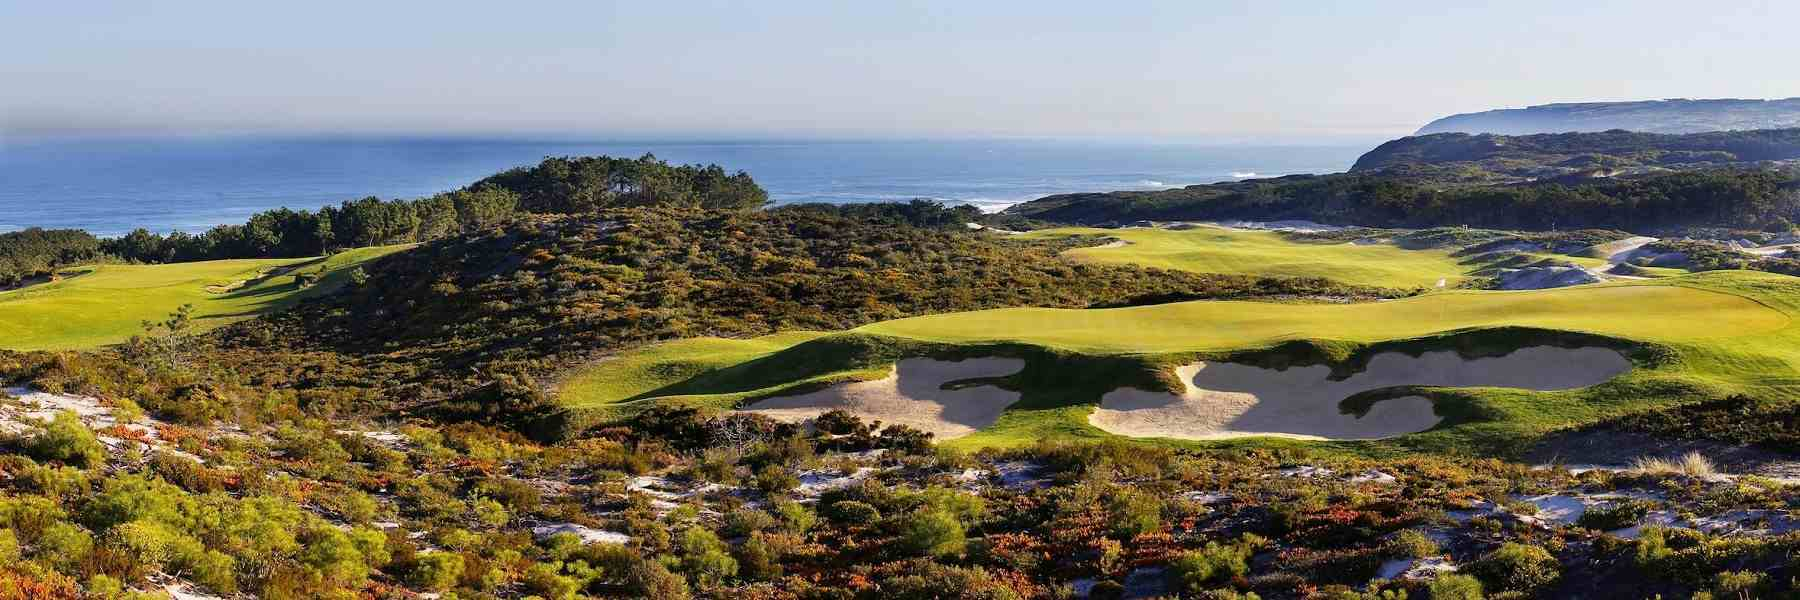 Westcliffs links no resort Praia del Rey